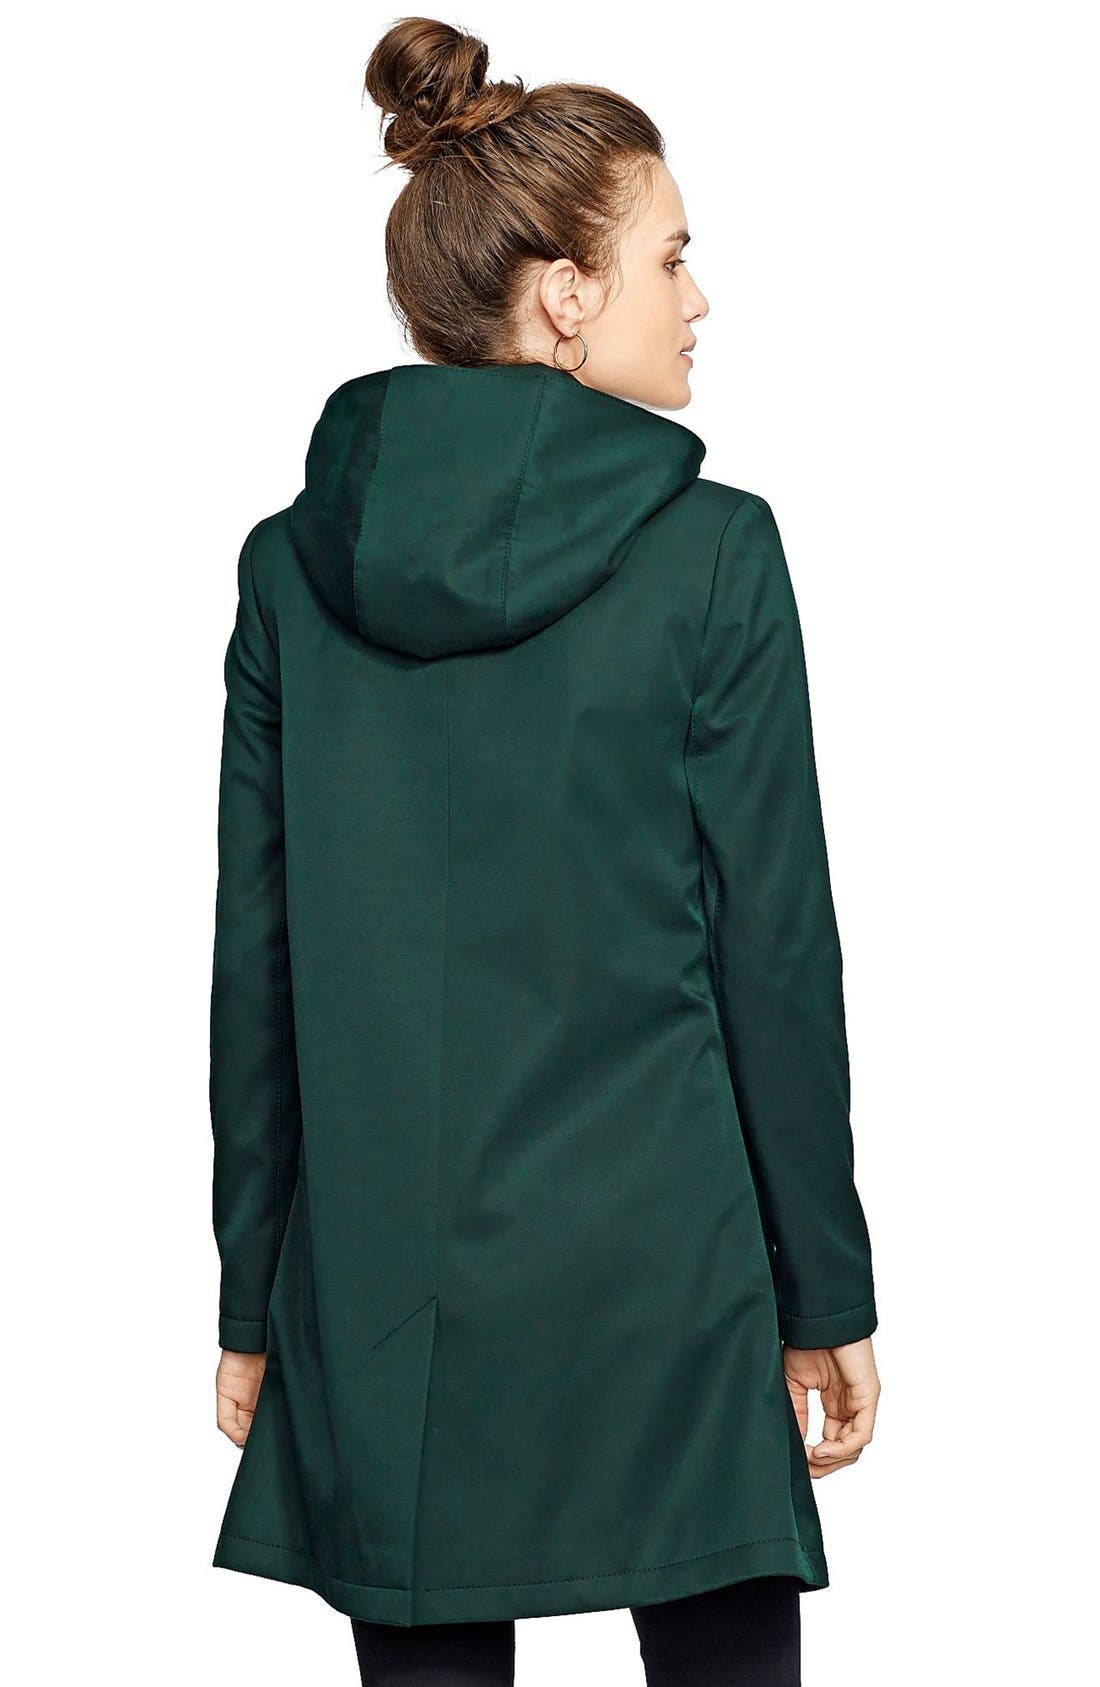 Alternate Image 2  - Lauren Ralph Lauren A-Line Raincoat (Regular & Petite) (Nordstrom Exclusive)